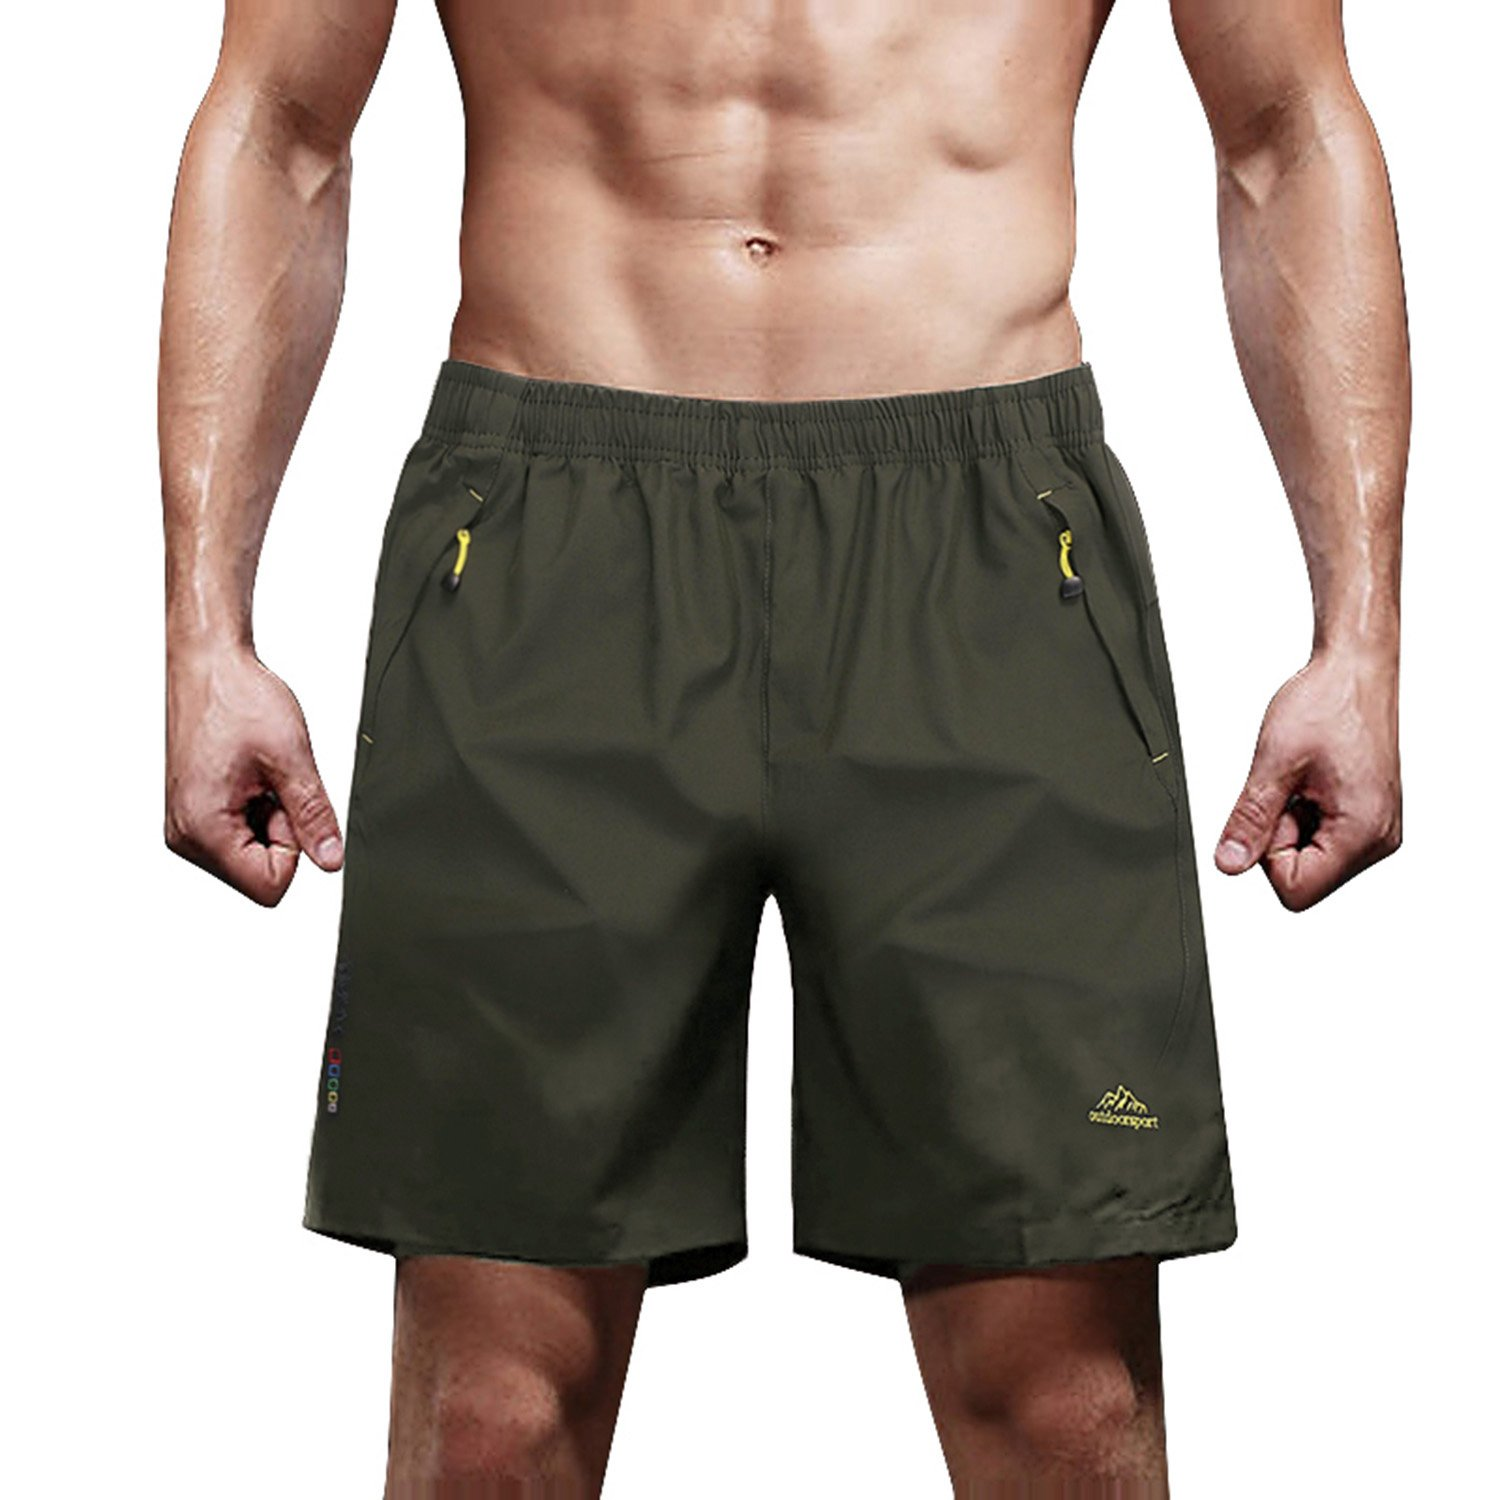 Men's Quick Dry Breathable Outdoor Sports Beach Shorts with Zipper Pockets